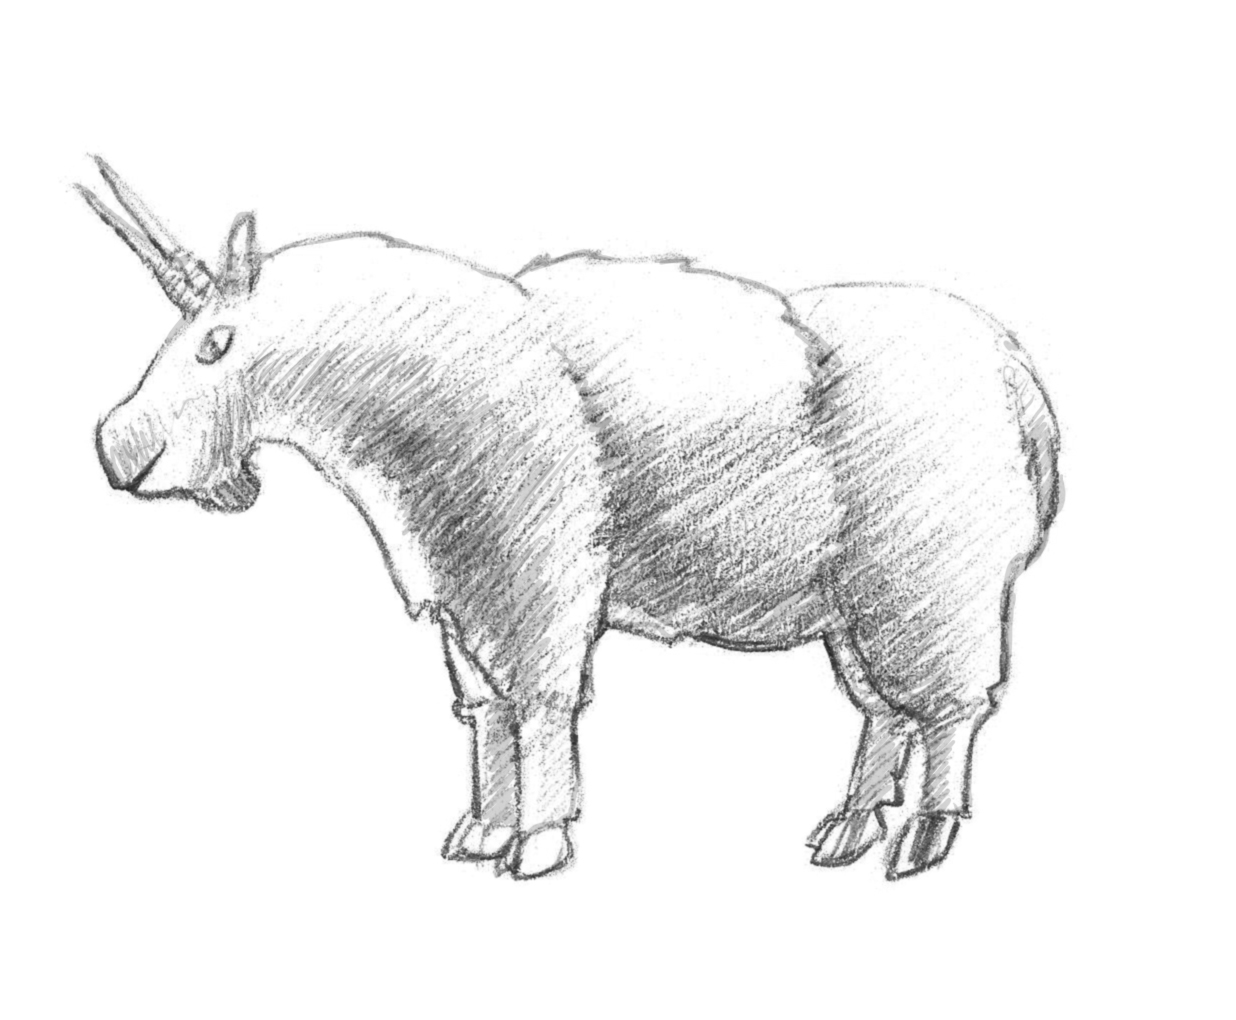 1236x1020 How To Draw A Mountain Goat